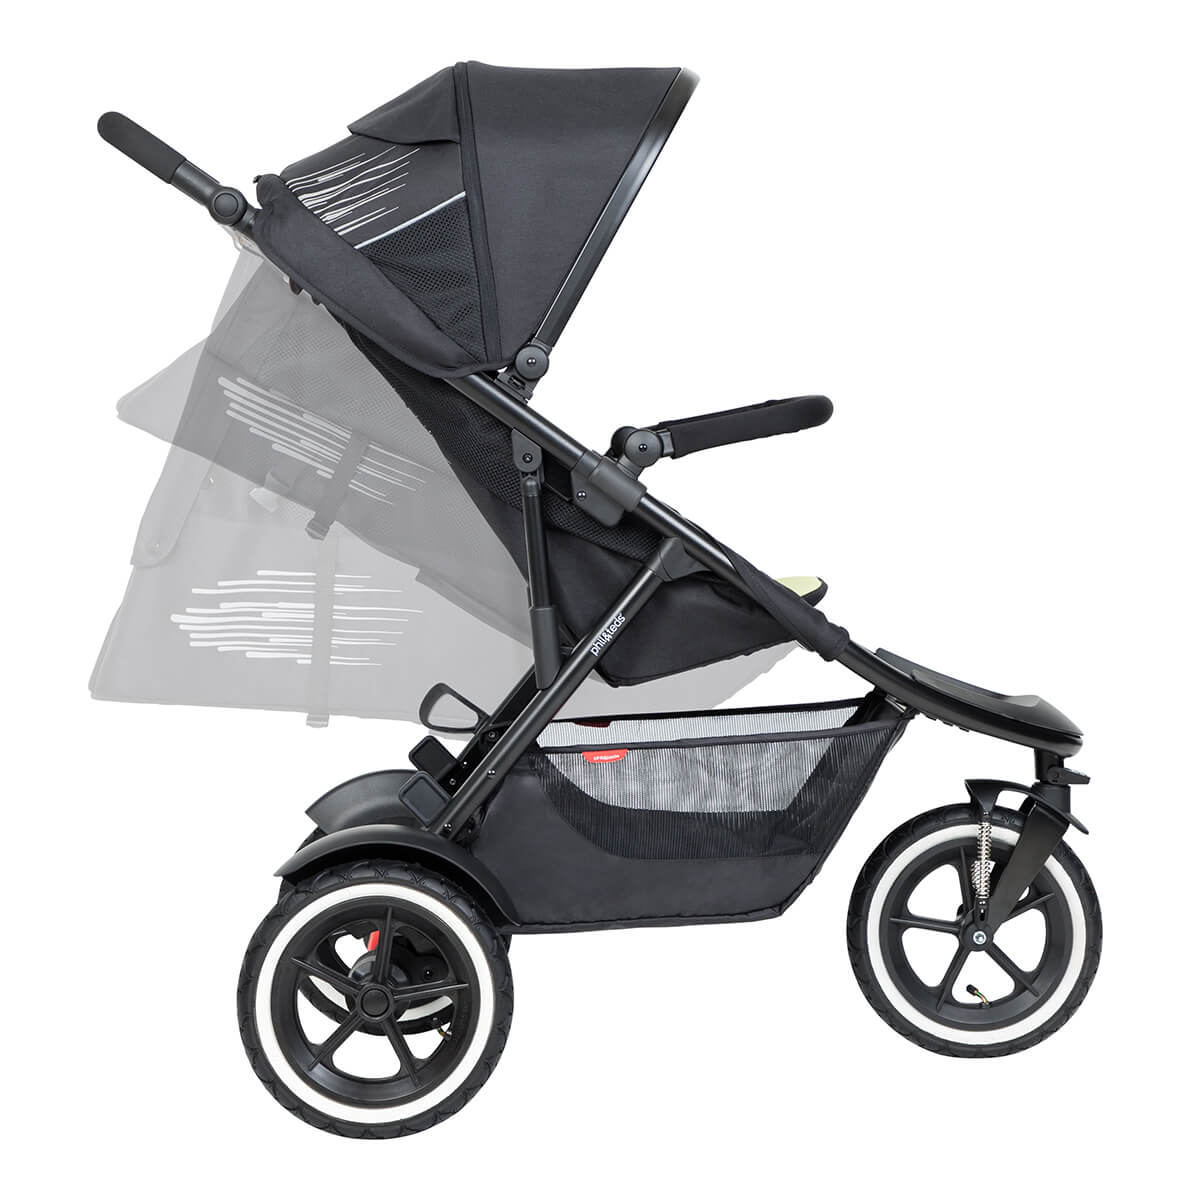 https://cdn.accentuate.io/4513463205984/19440099492024/philteds-sport-buggy-can-recline-in-multiple-angles-including-full-recline-for-newborn-baby-v1626486610977.jpg?1200x1200